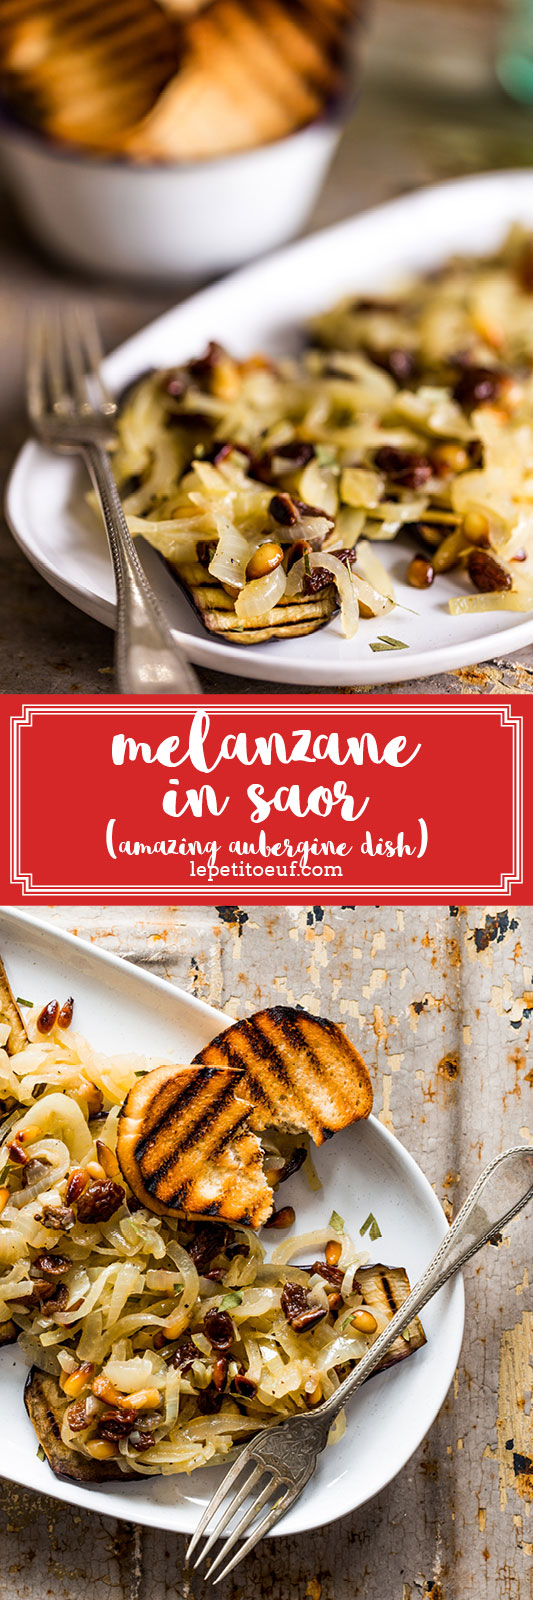 Melanzane in Saor is an amazing vegetarian and vegan aubergine (eggplant) dish in a sweet and slightly sour sauce, which is unique to Venice and follows a proud history of Italian food using love, respect and time to get the best of the ingredients. It's a serious make ahead dish, needing 2 days to mature but worth the wait for those fantastic flavours and perfect for buffet spreads or picnics.